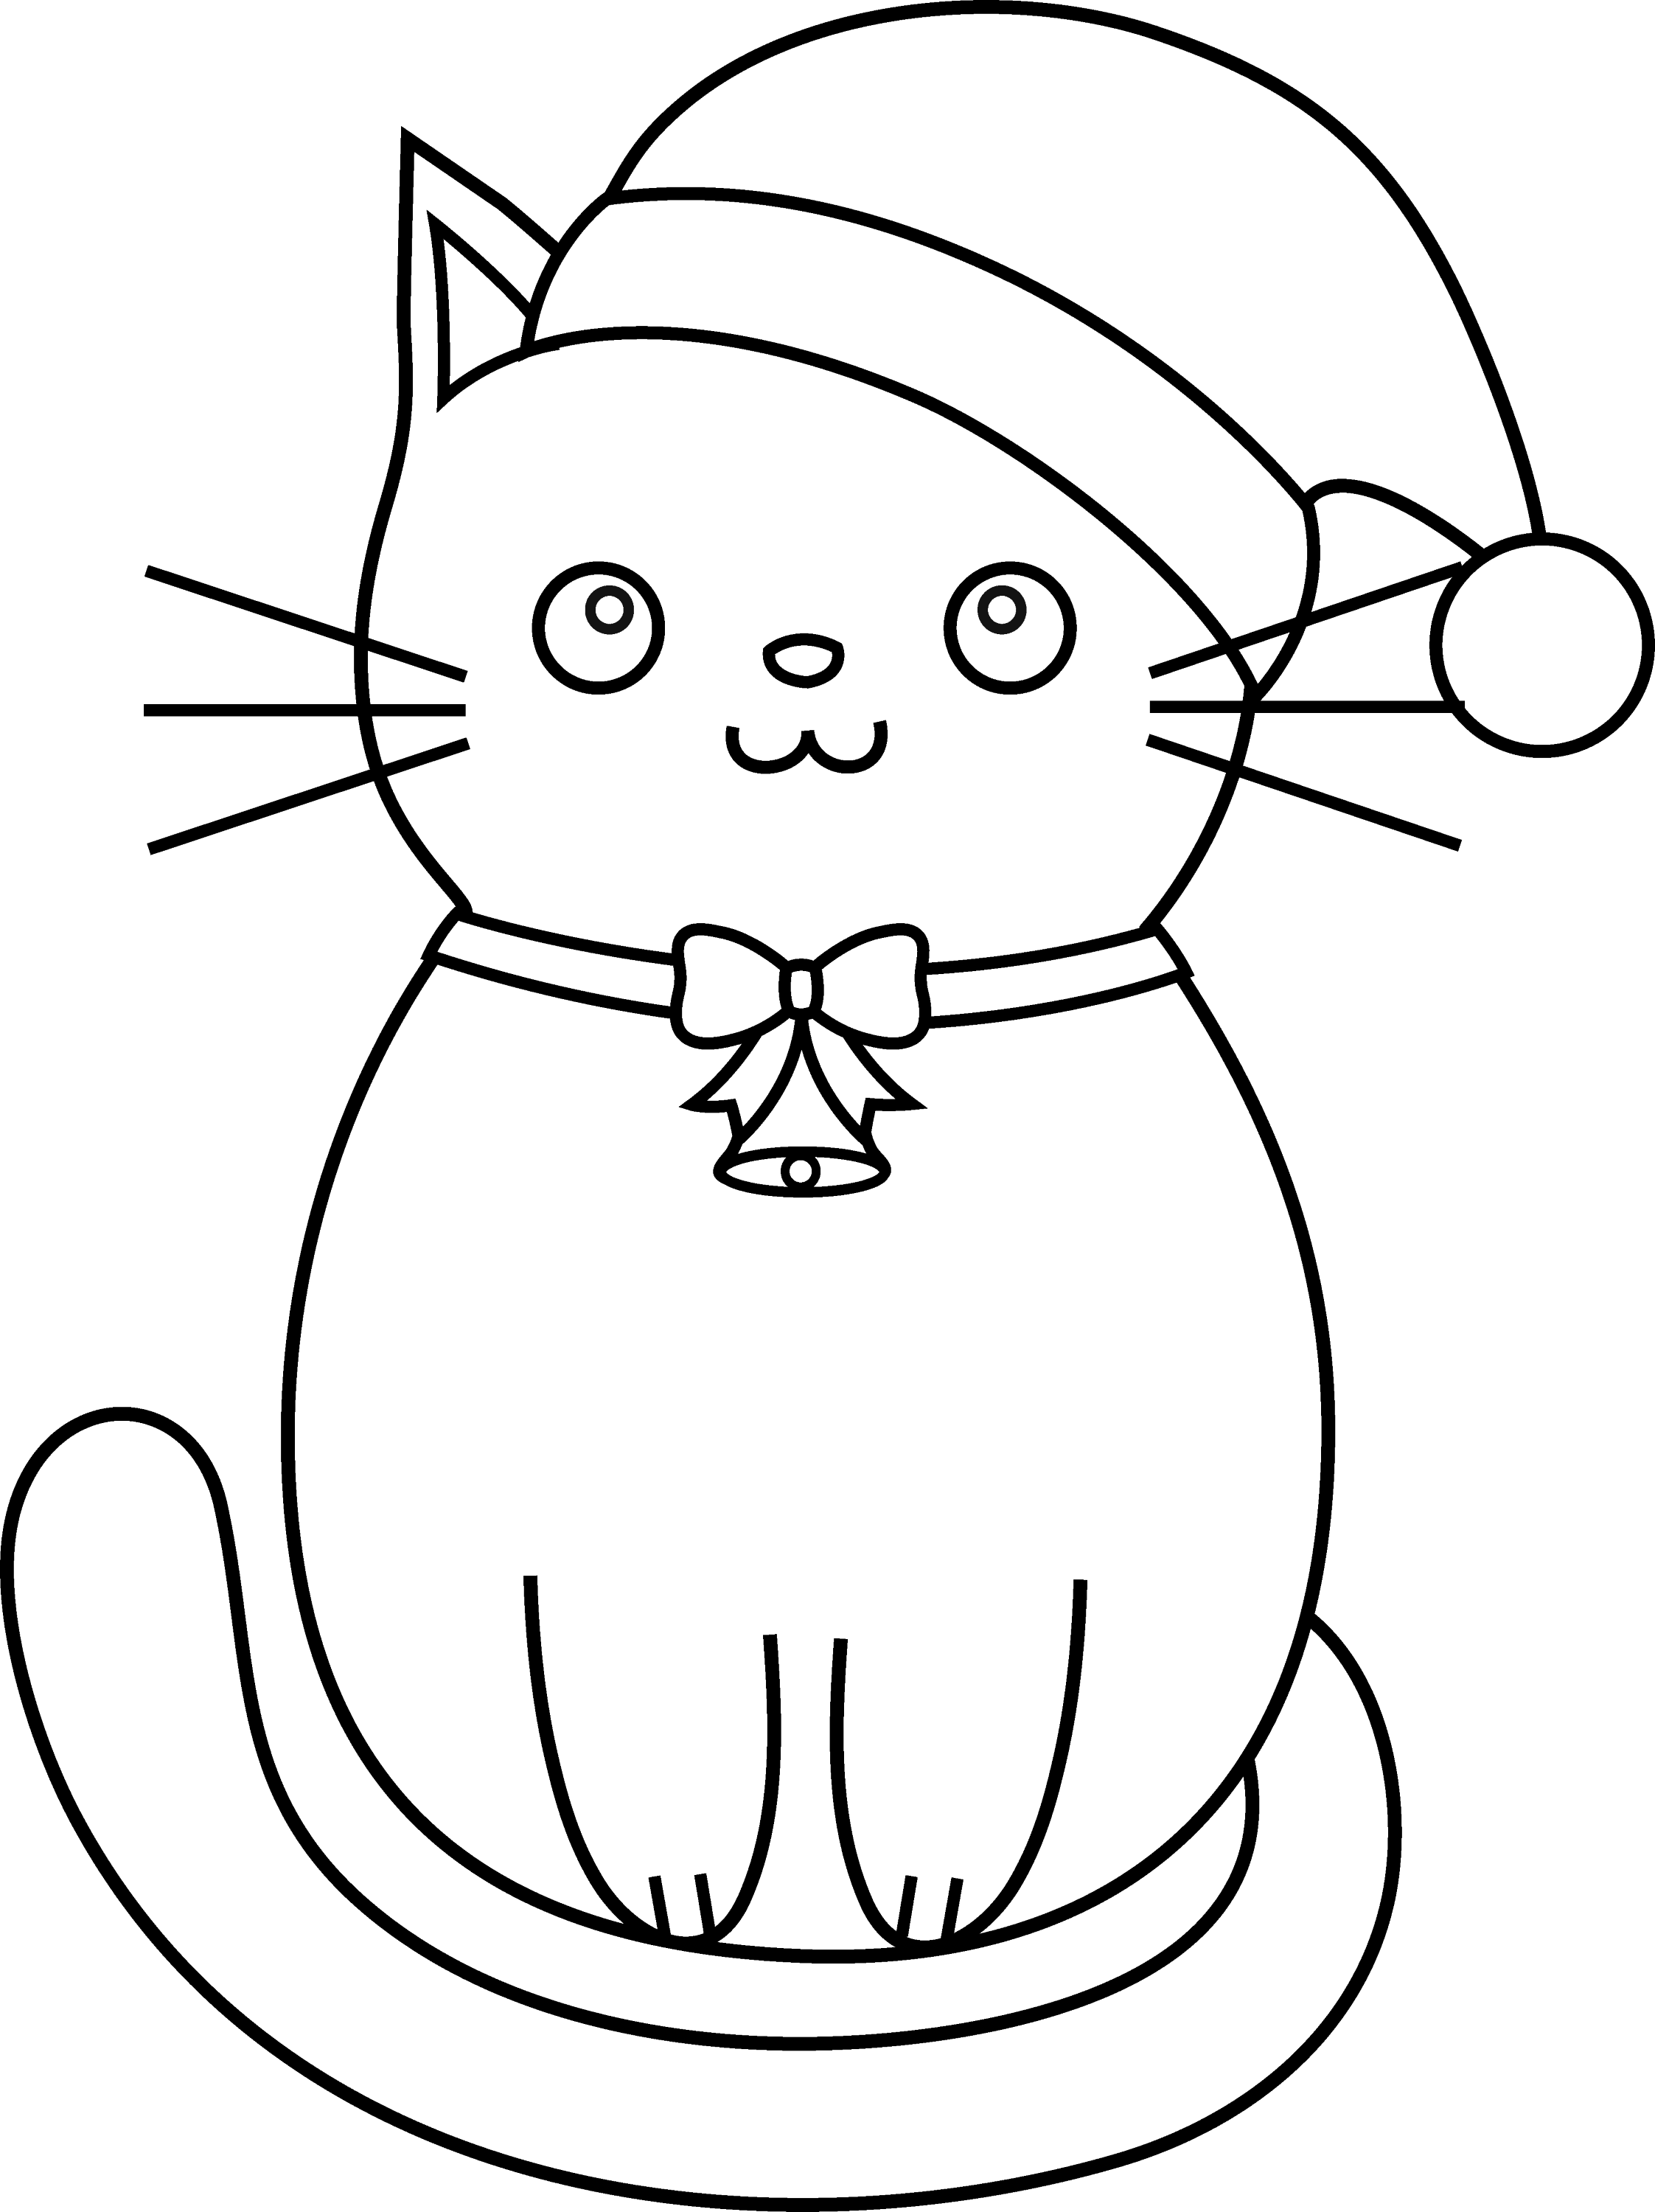 printable cat pictures to color 55 best cat coloring pages images on pinterest coloring printable cat to pictures color